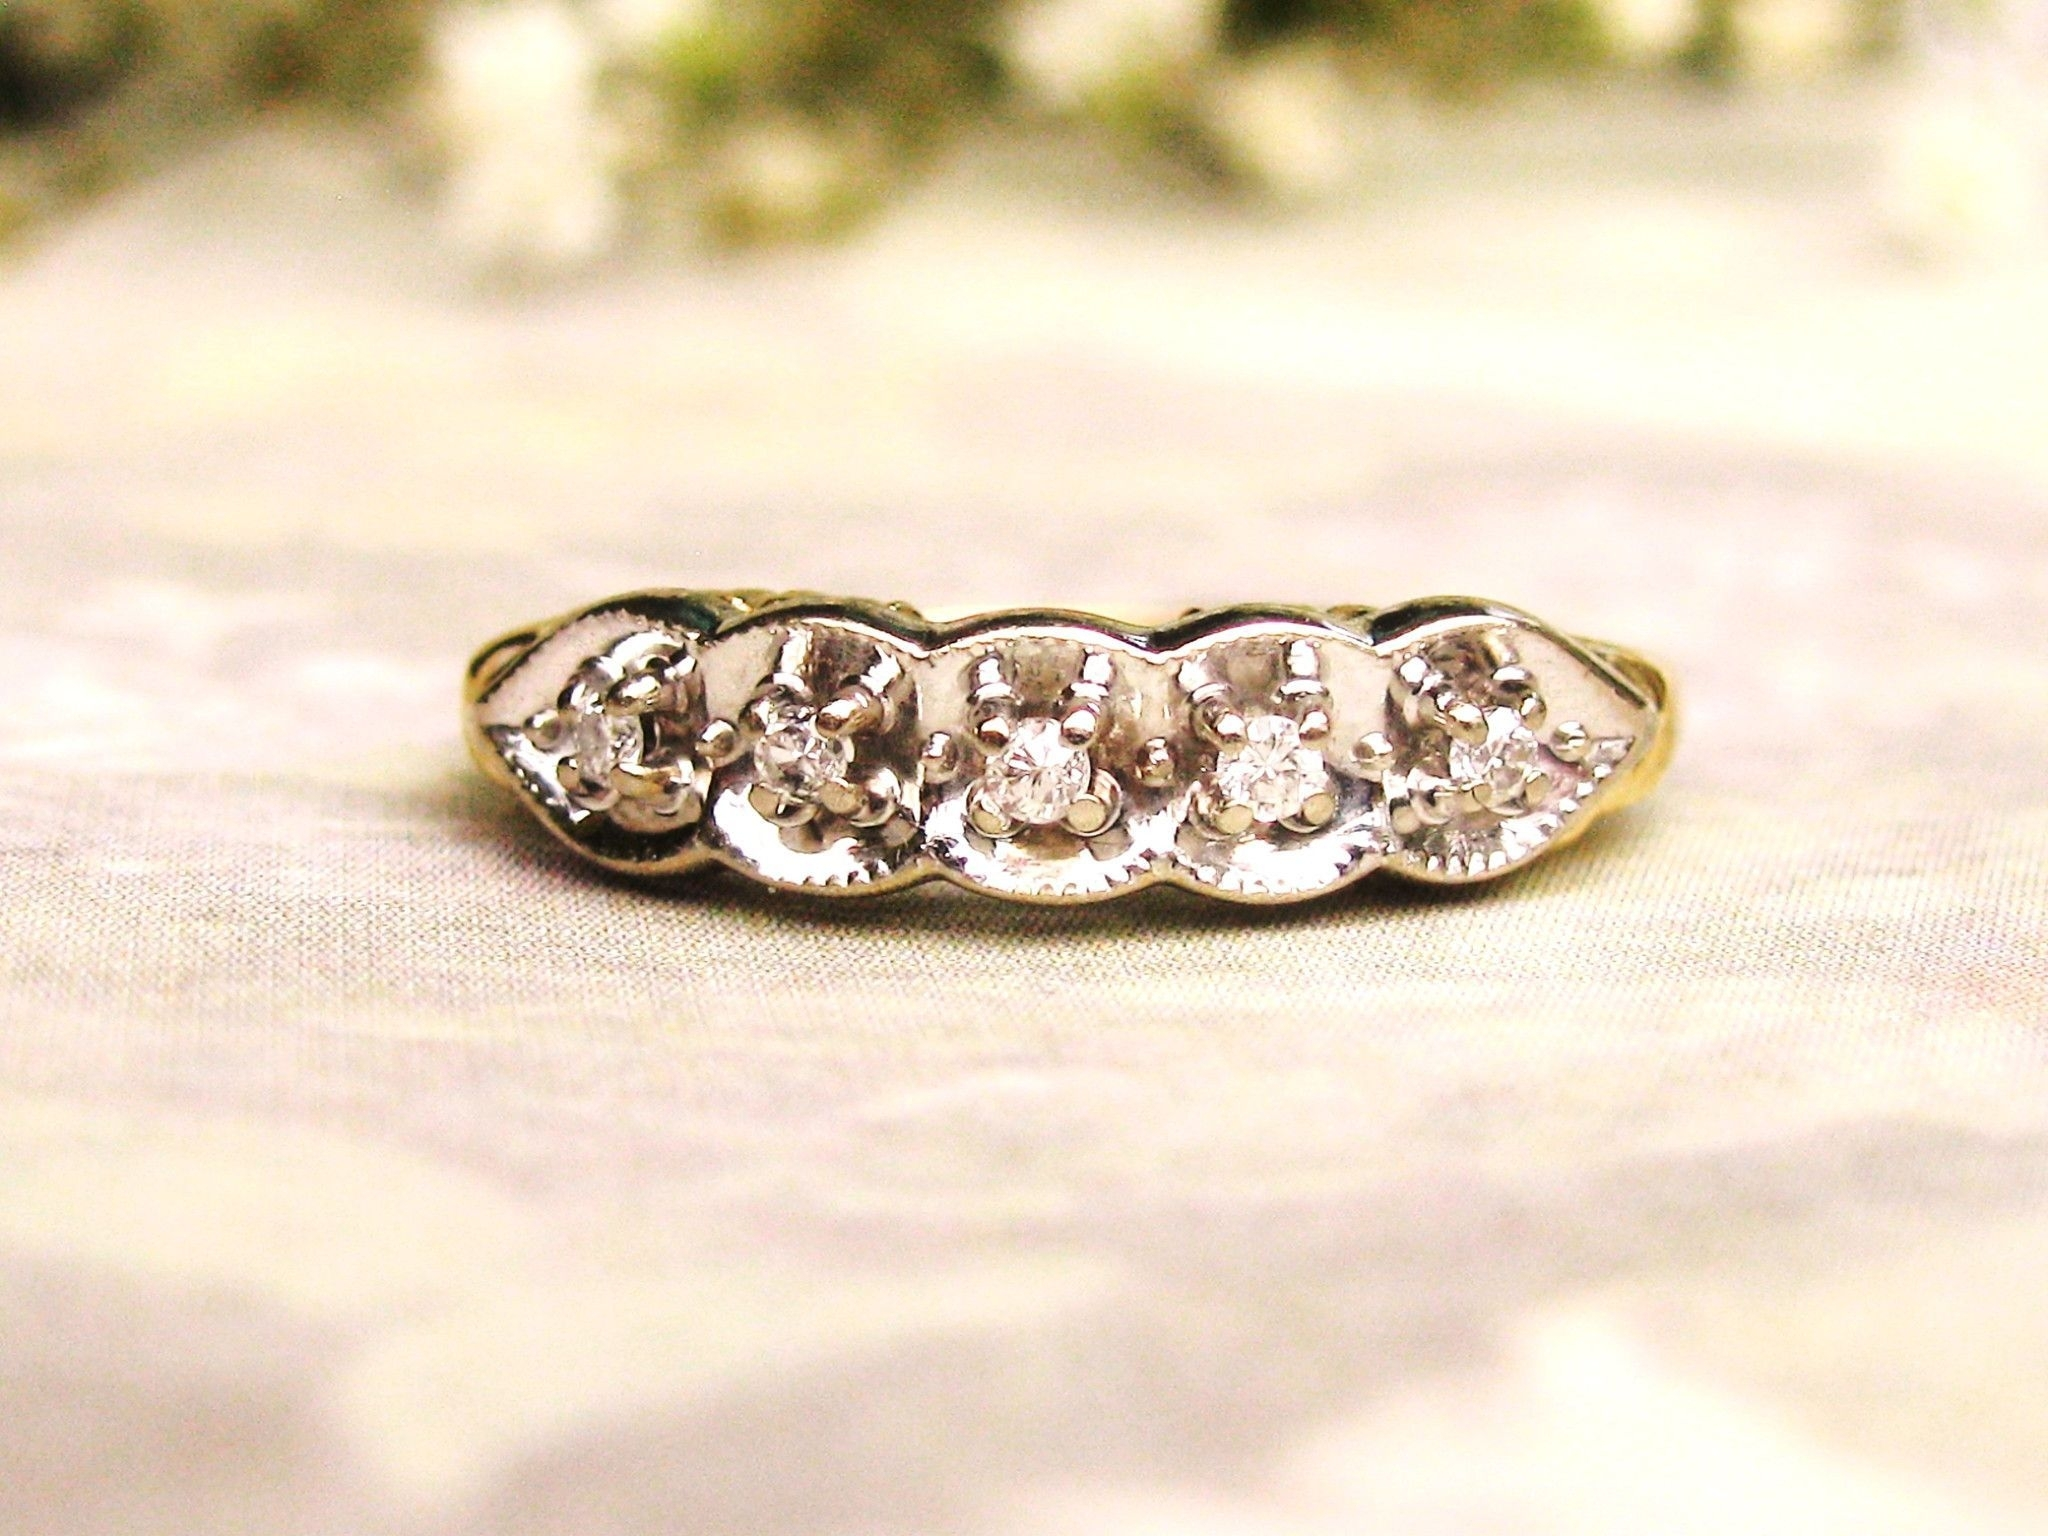 Vintage Five Stone Diamond Wedding Ring Scalloped Edge Illusion Intended For Recent Diamond Five Stone Bands In 10K Two Tone Gold (Gallery 4 of 15)